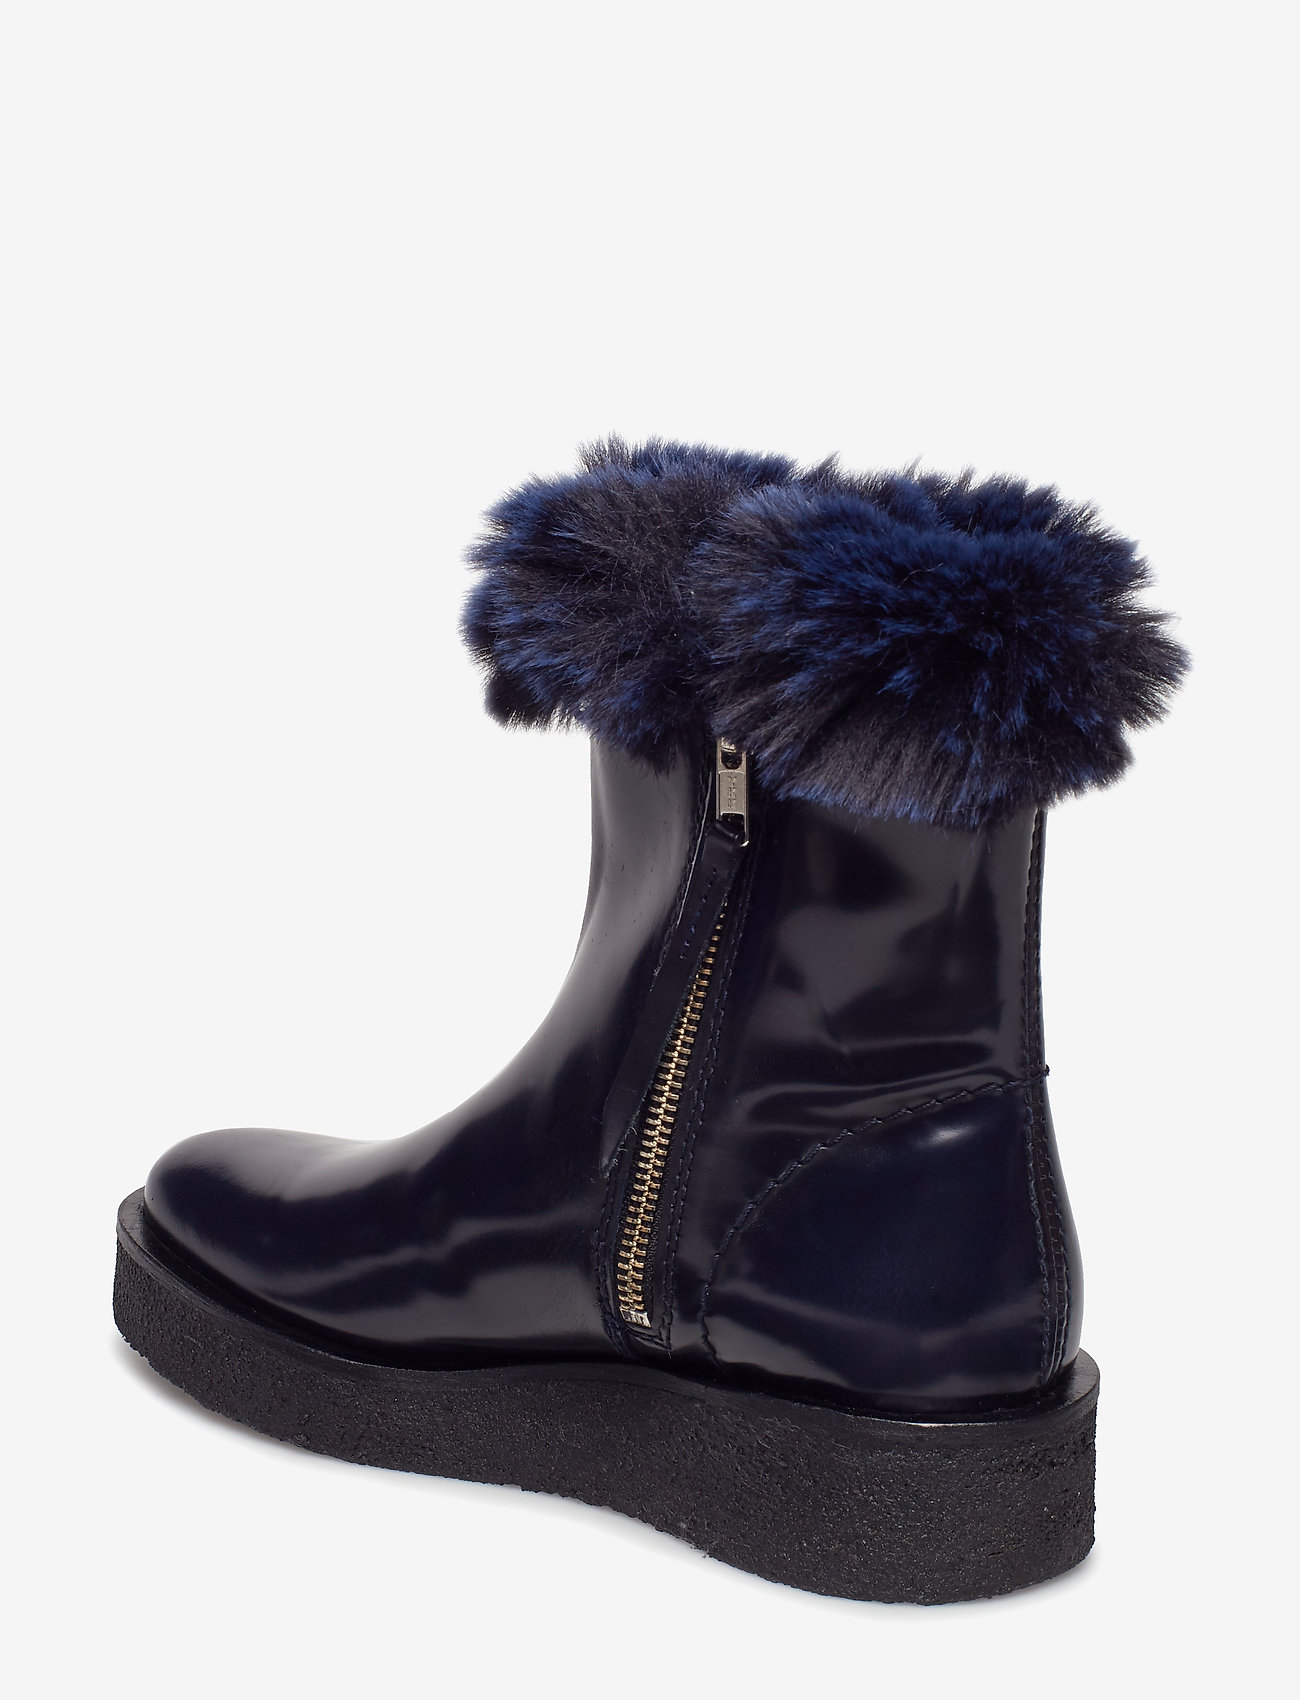 Sky Boot (Navy) - Hope